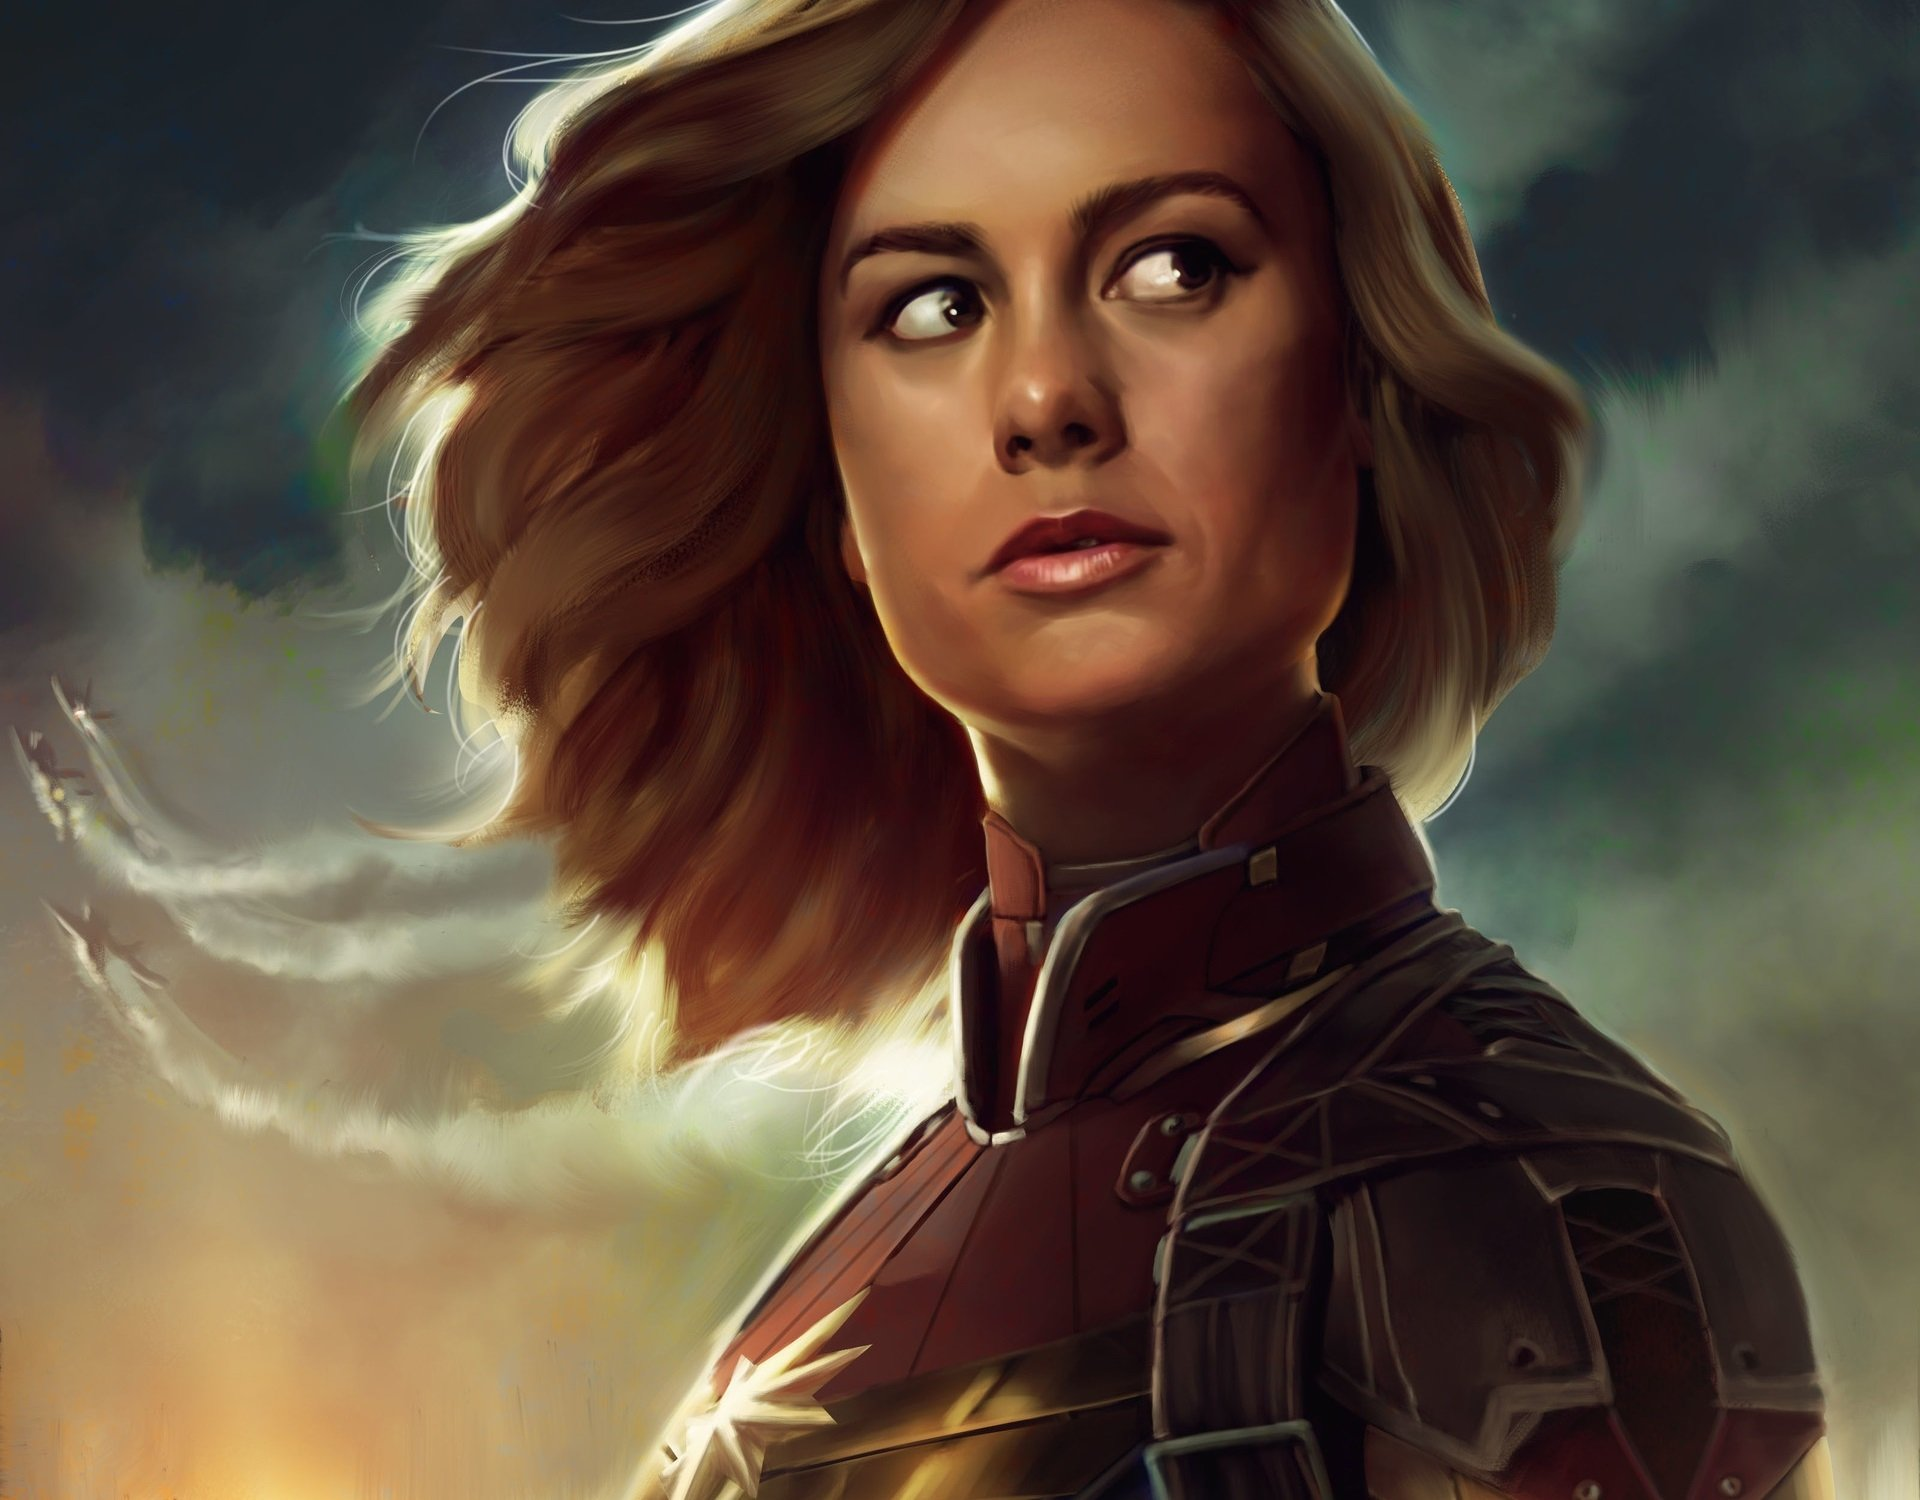 1920x1500 - Brie Larson Wallpapers 30